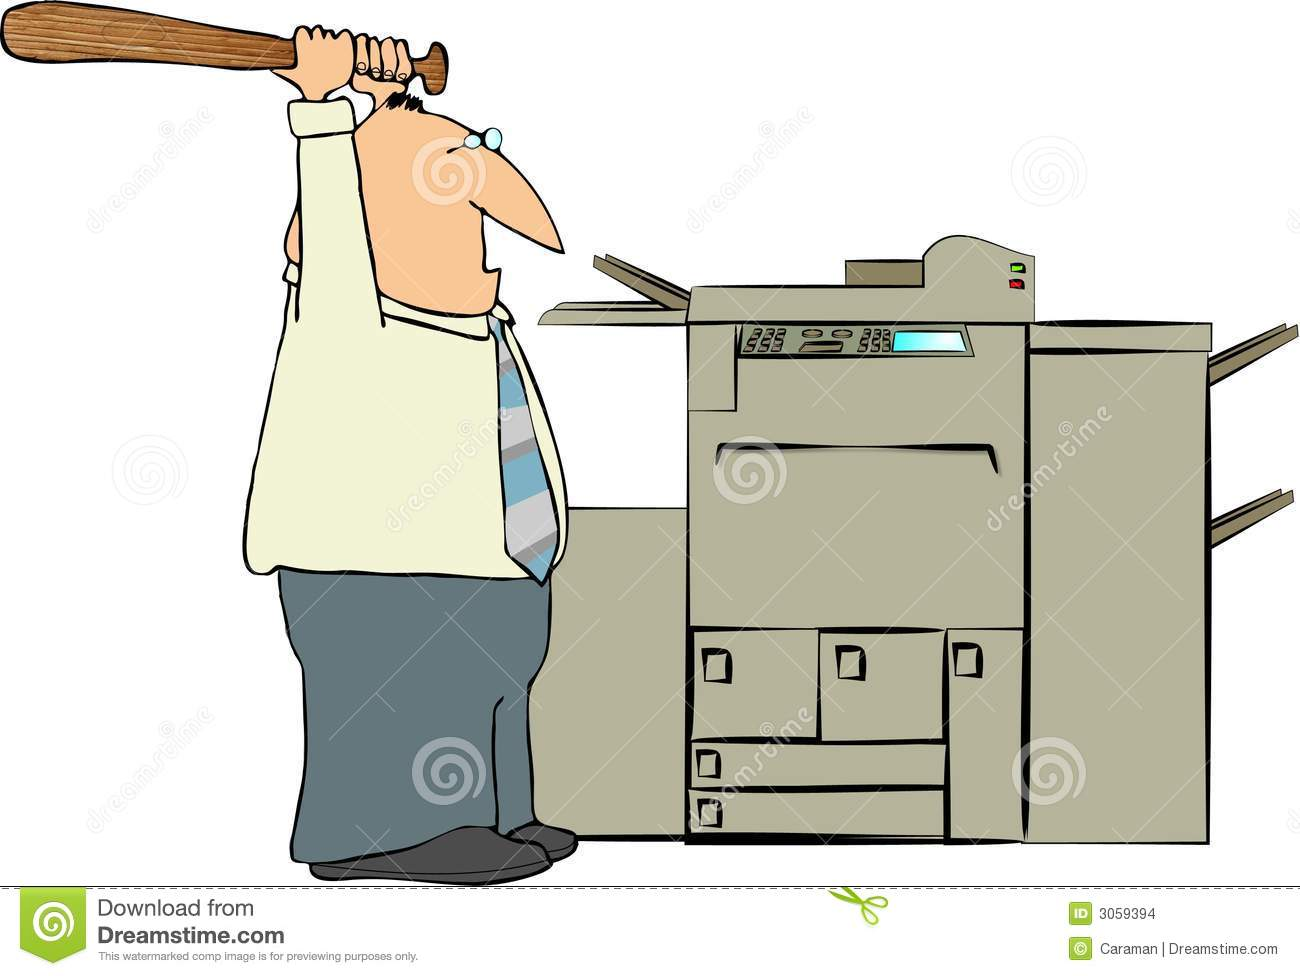 Depicts A Man About To Hit A Copy Machine With A Baseball Bat